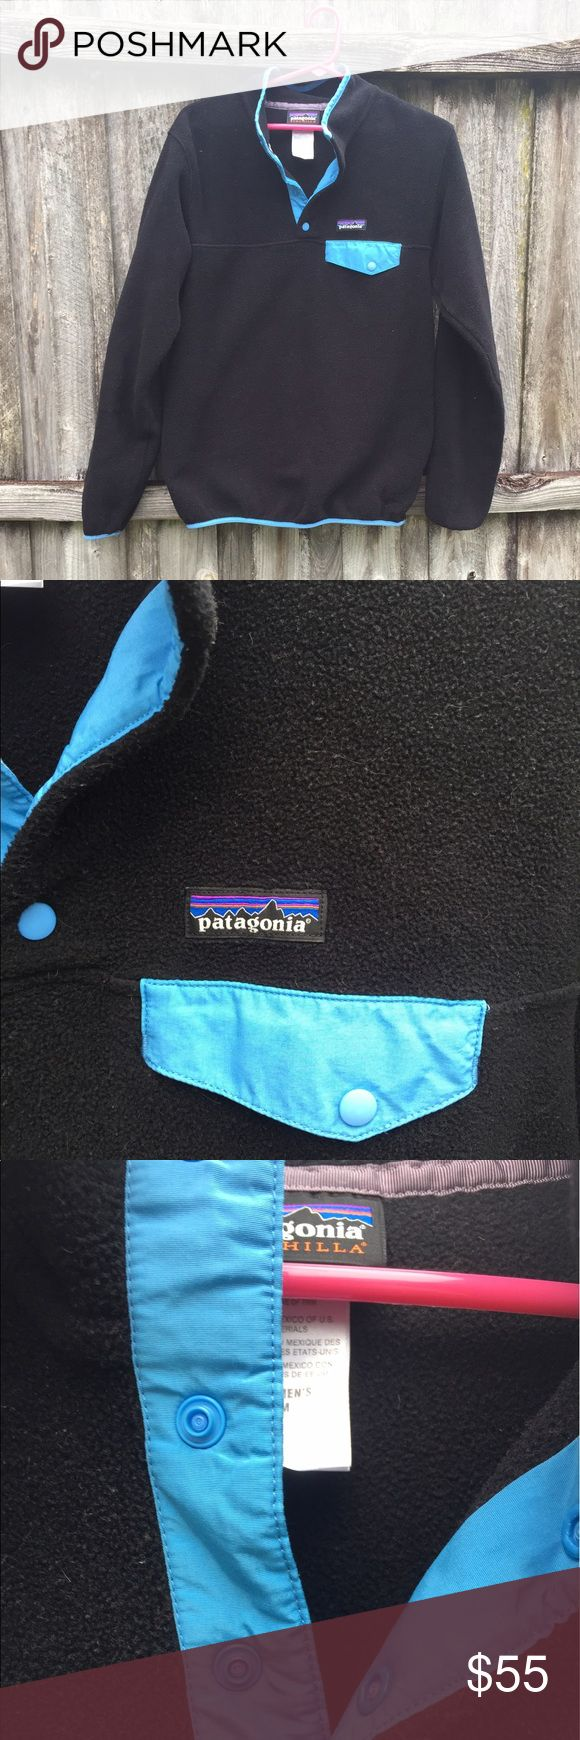 Women's Patagonia pullover Worn only once, so practically new. Only reason I'm selling it is because I never wear it. Great for any cold condition! Patagonia Jackets & Coats